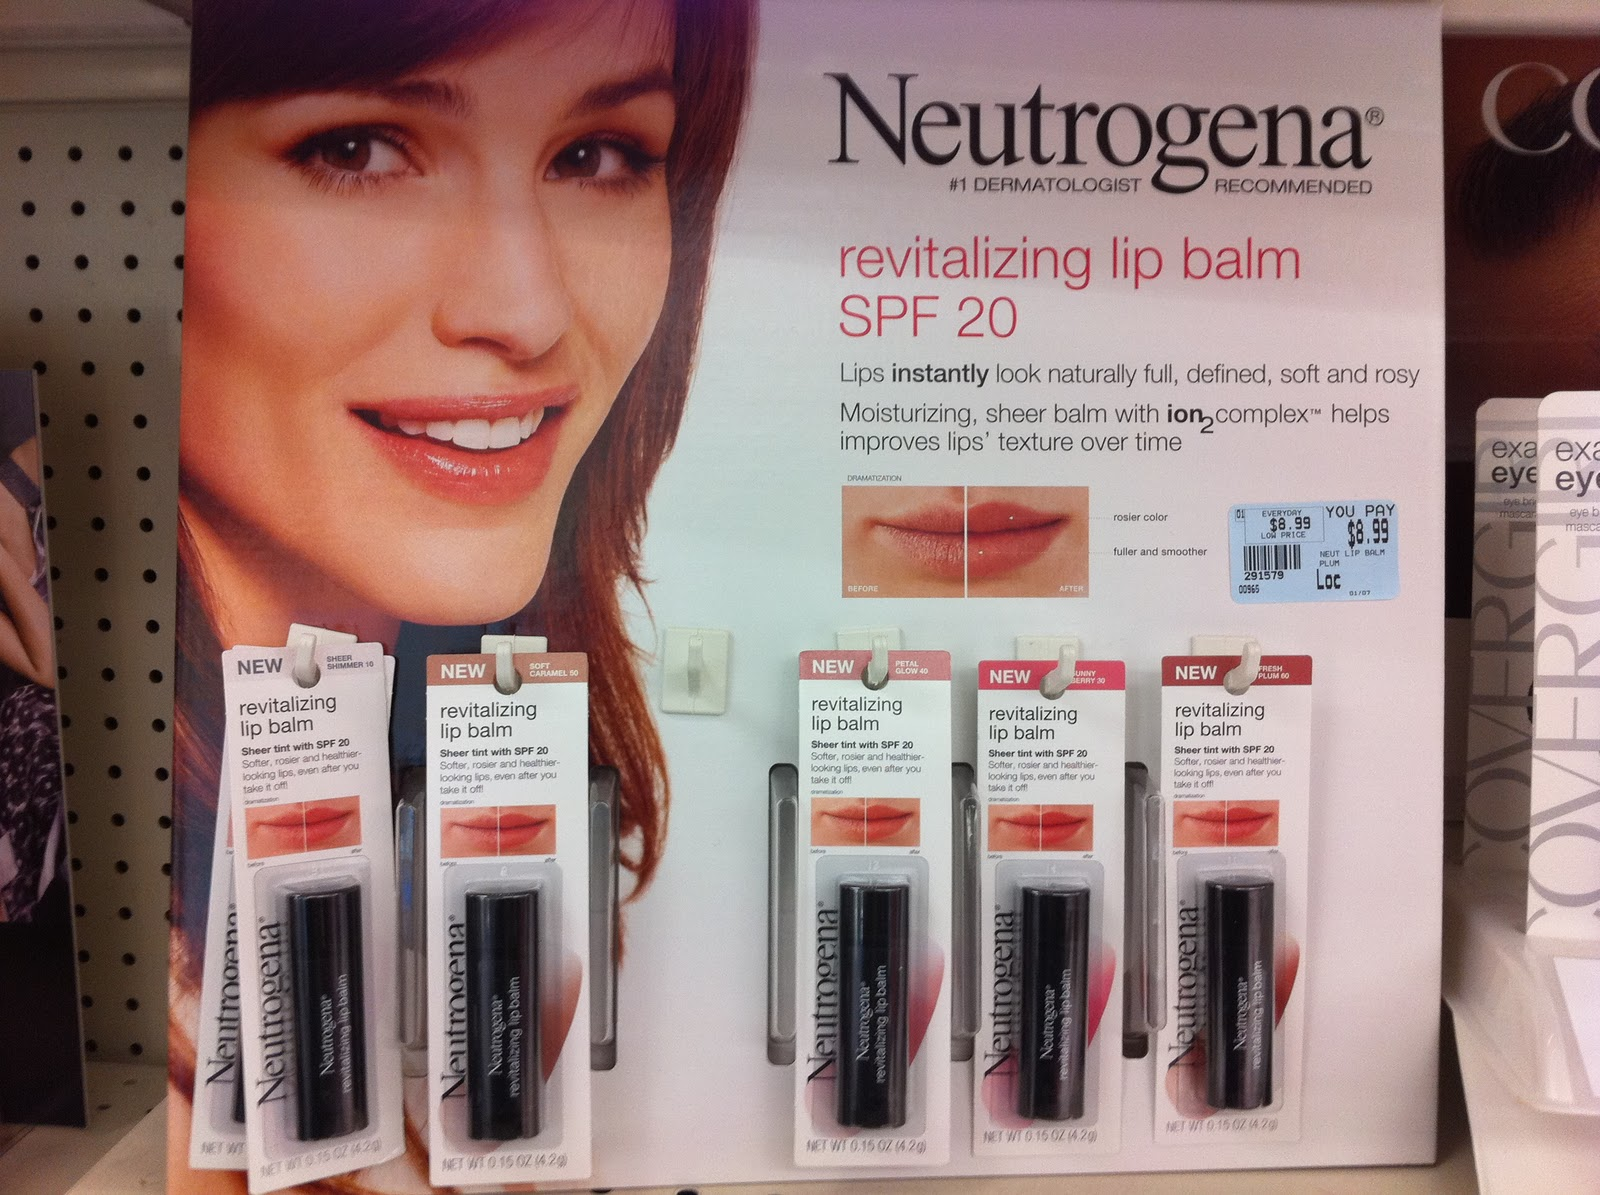 Some New Neutrogena Products First The Revitalizing Lip Balm With Spf 20